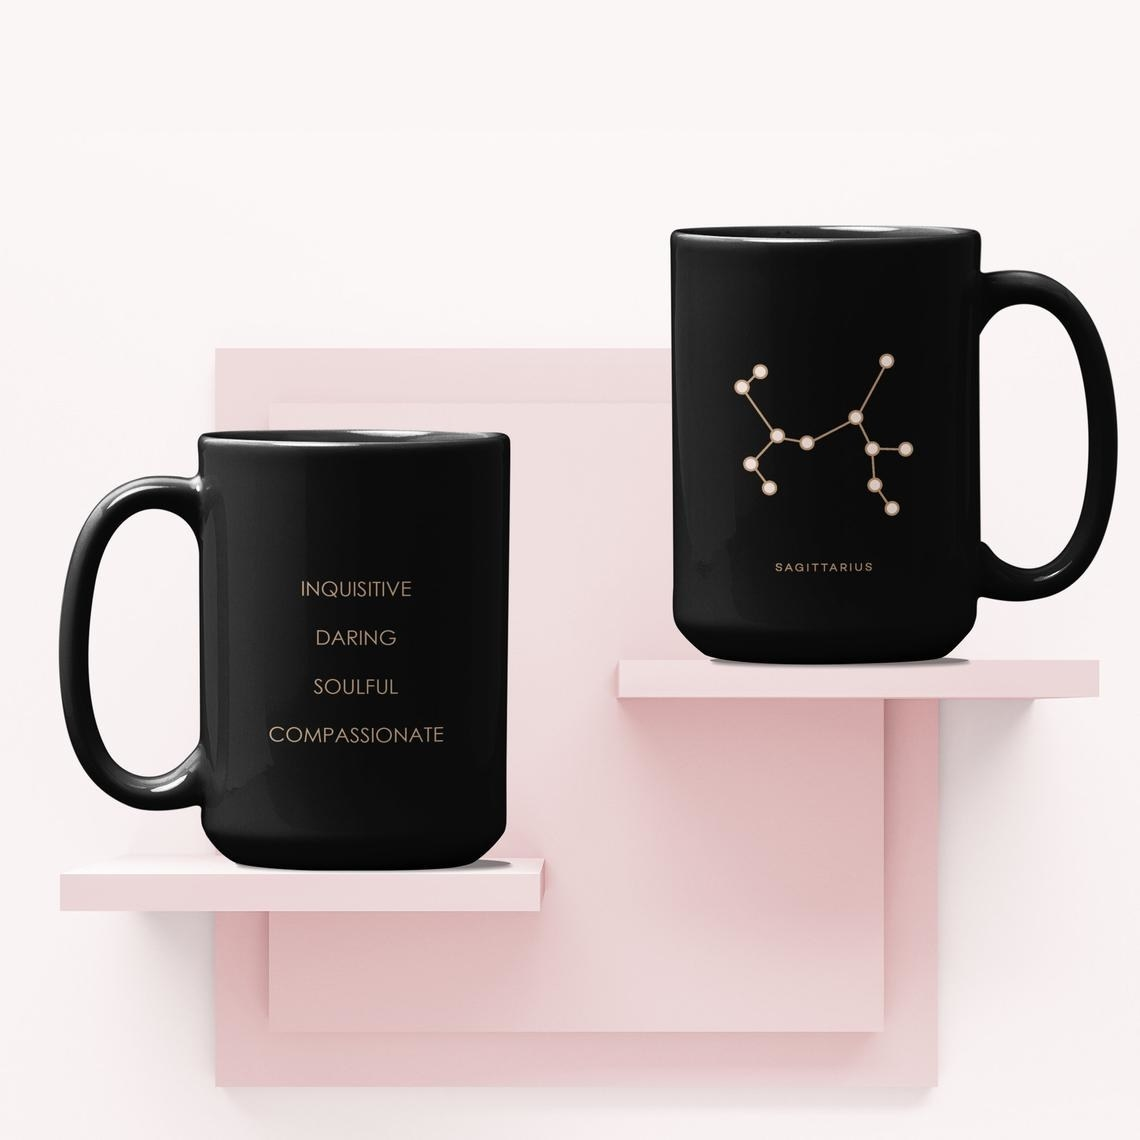 The front of the mug with the constellation and the back of the mug with the sign's key traits